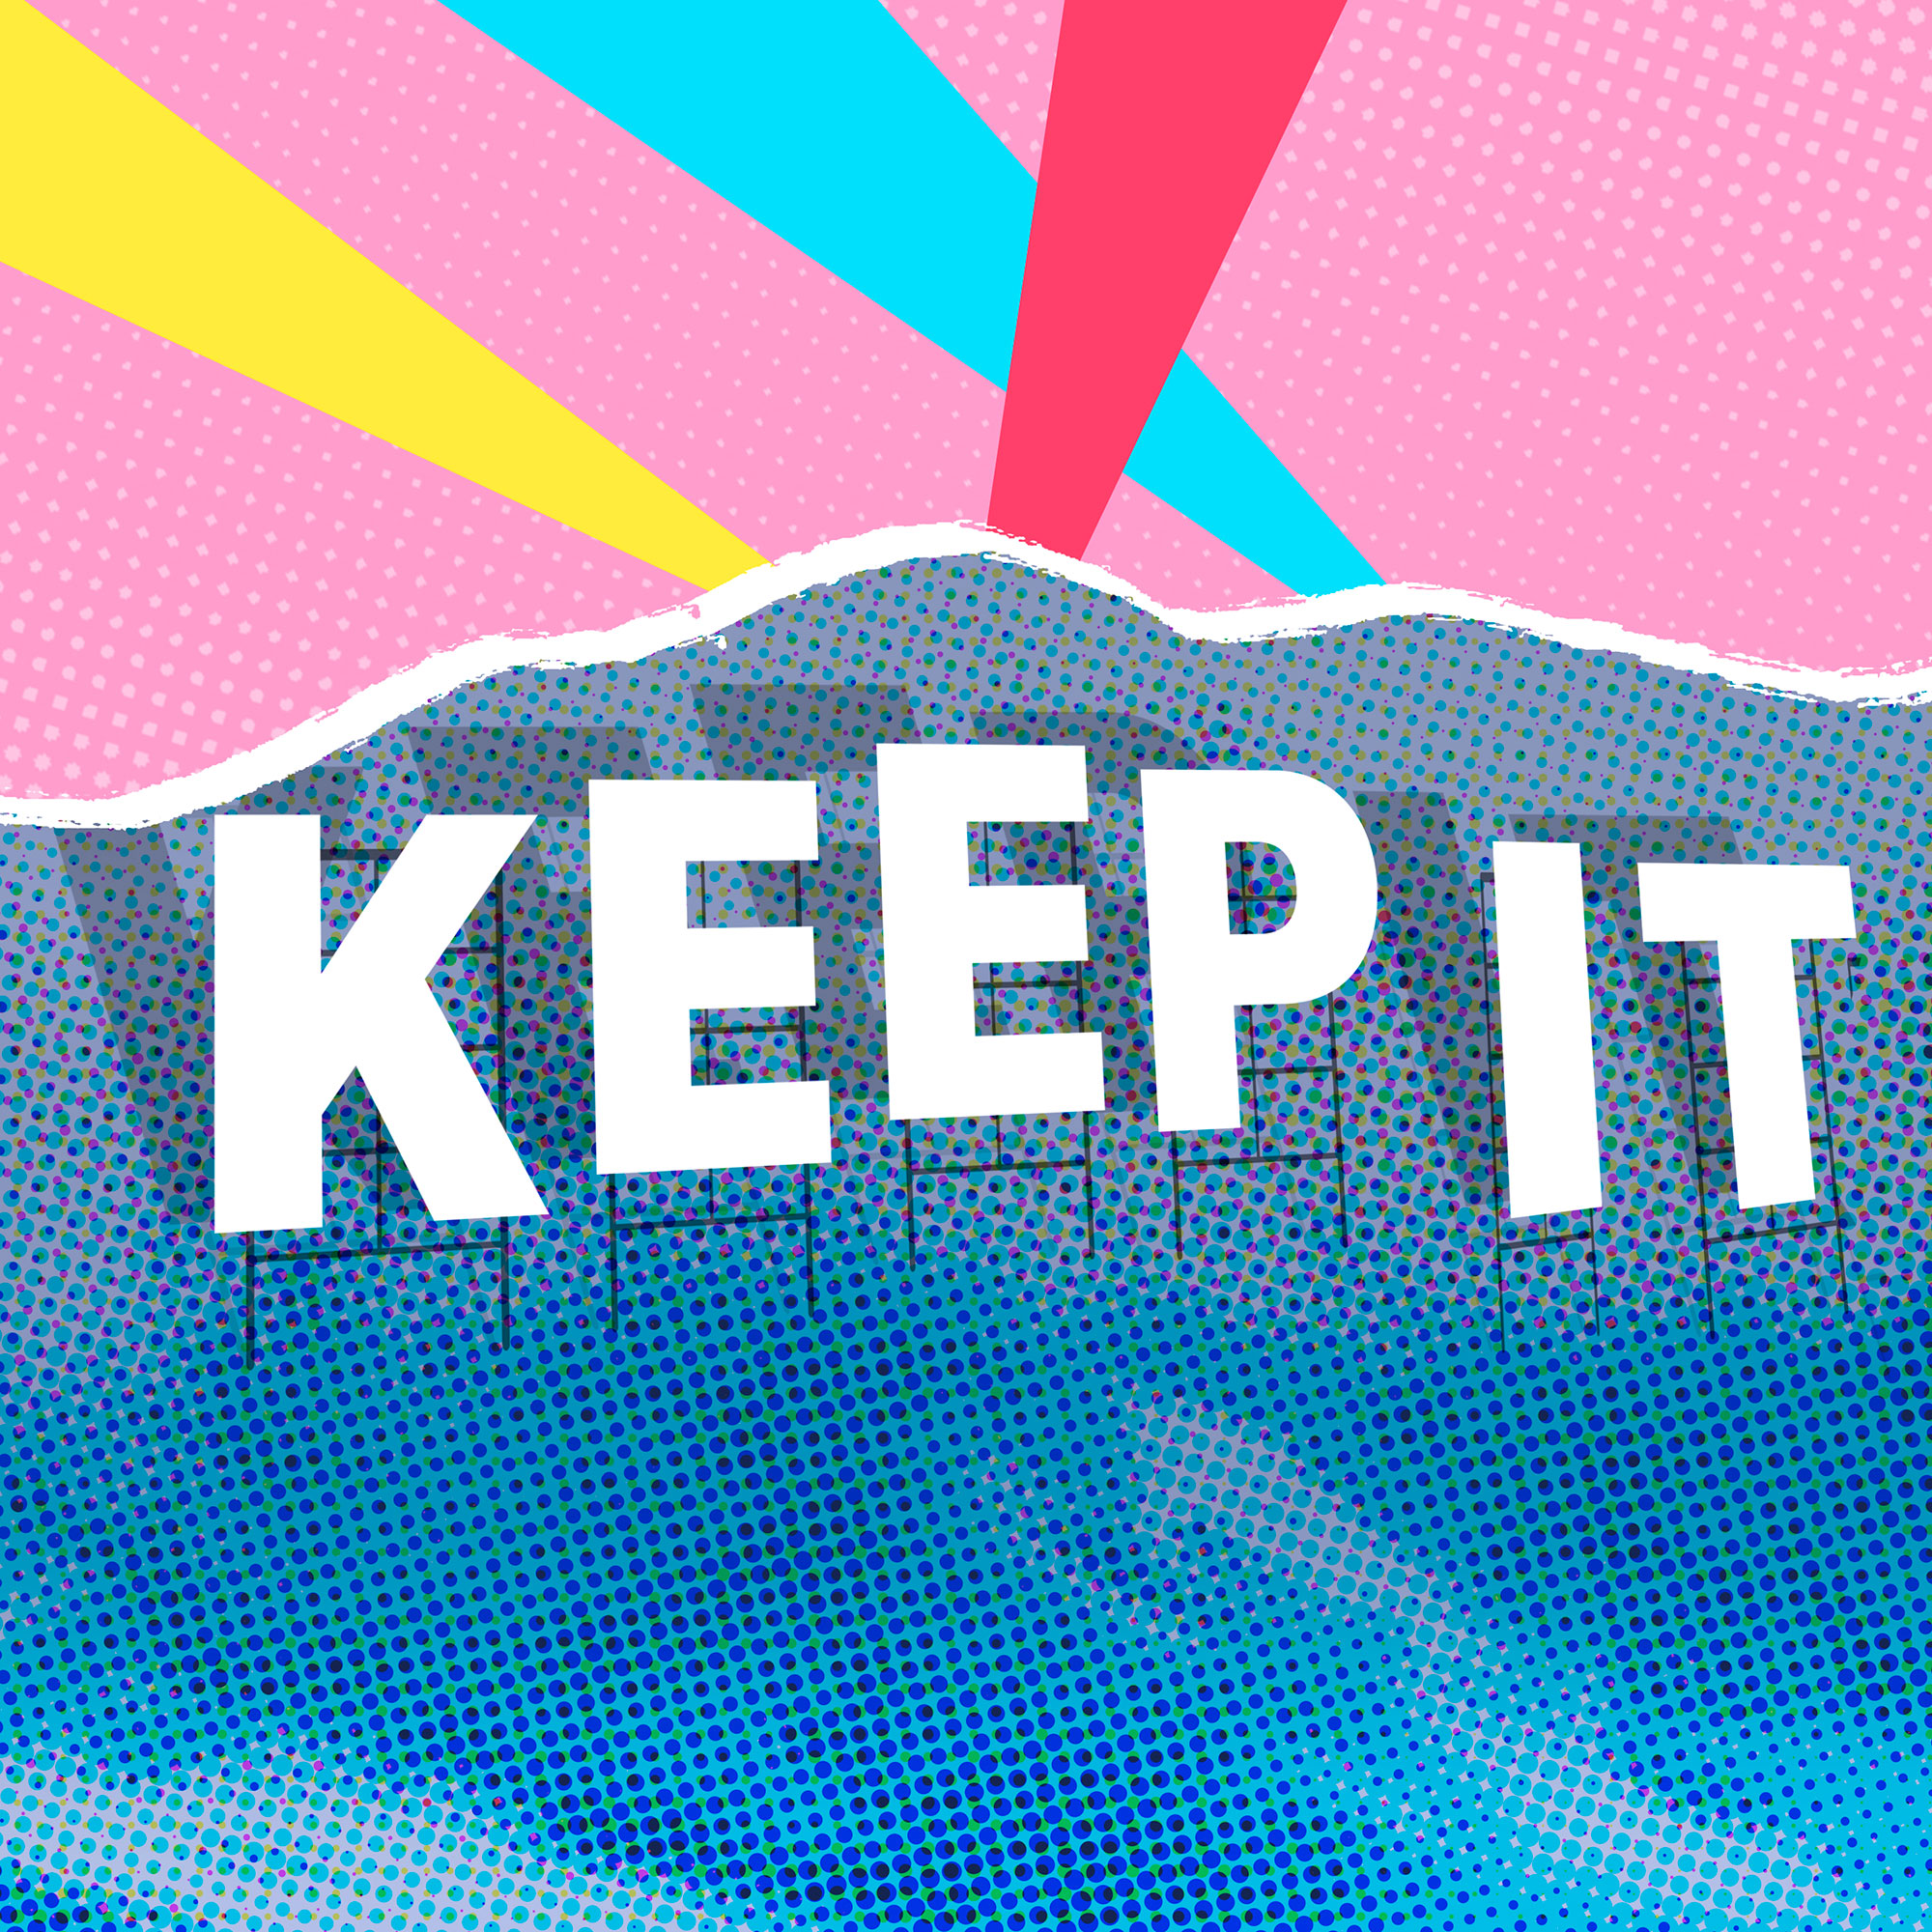 Keep It! by Ira Madison